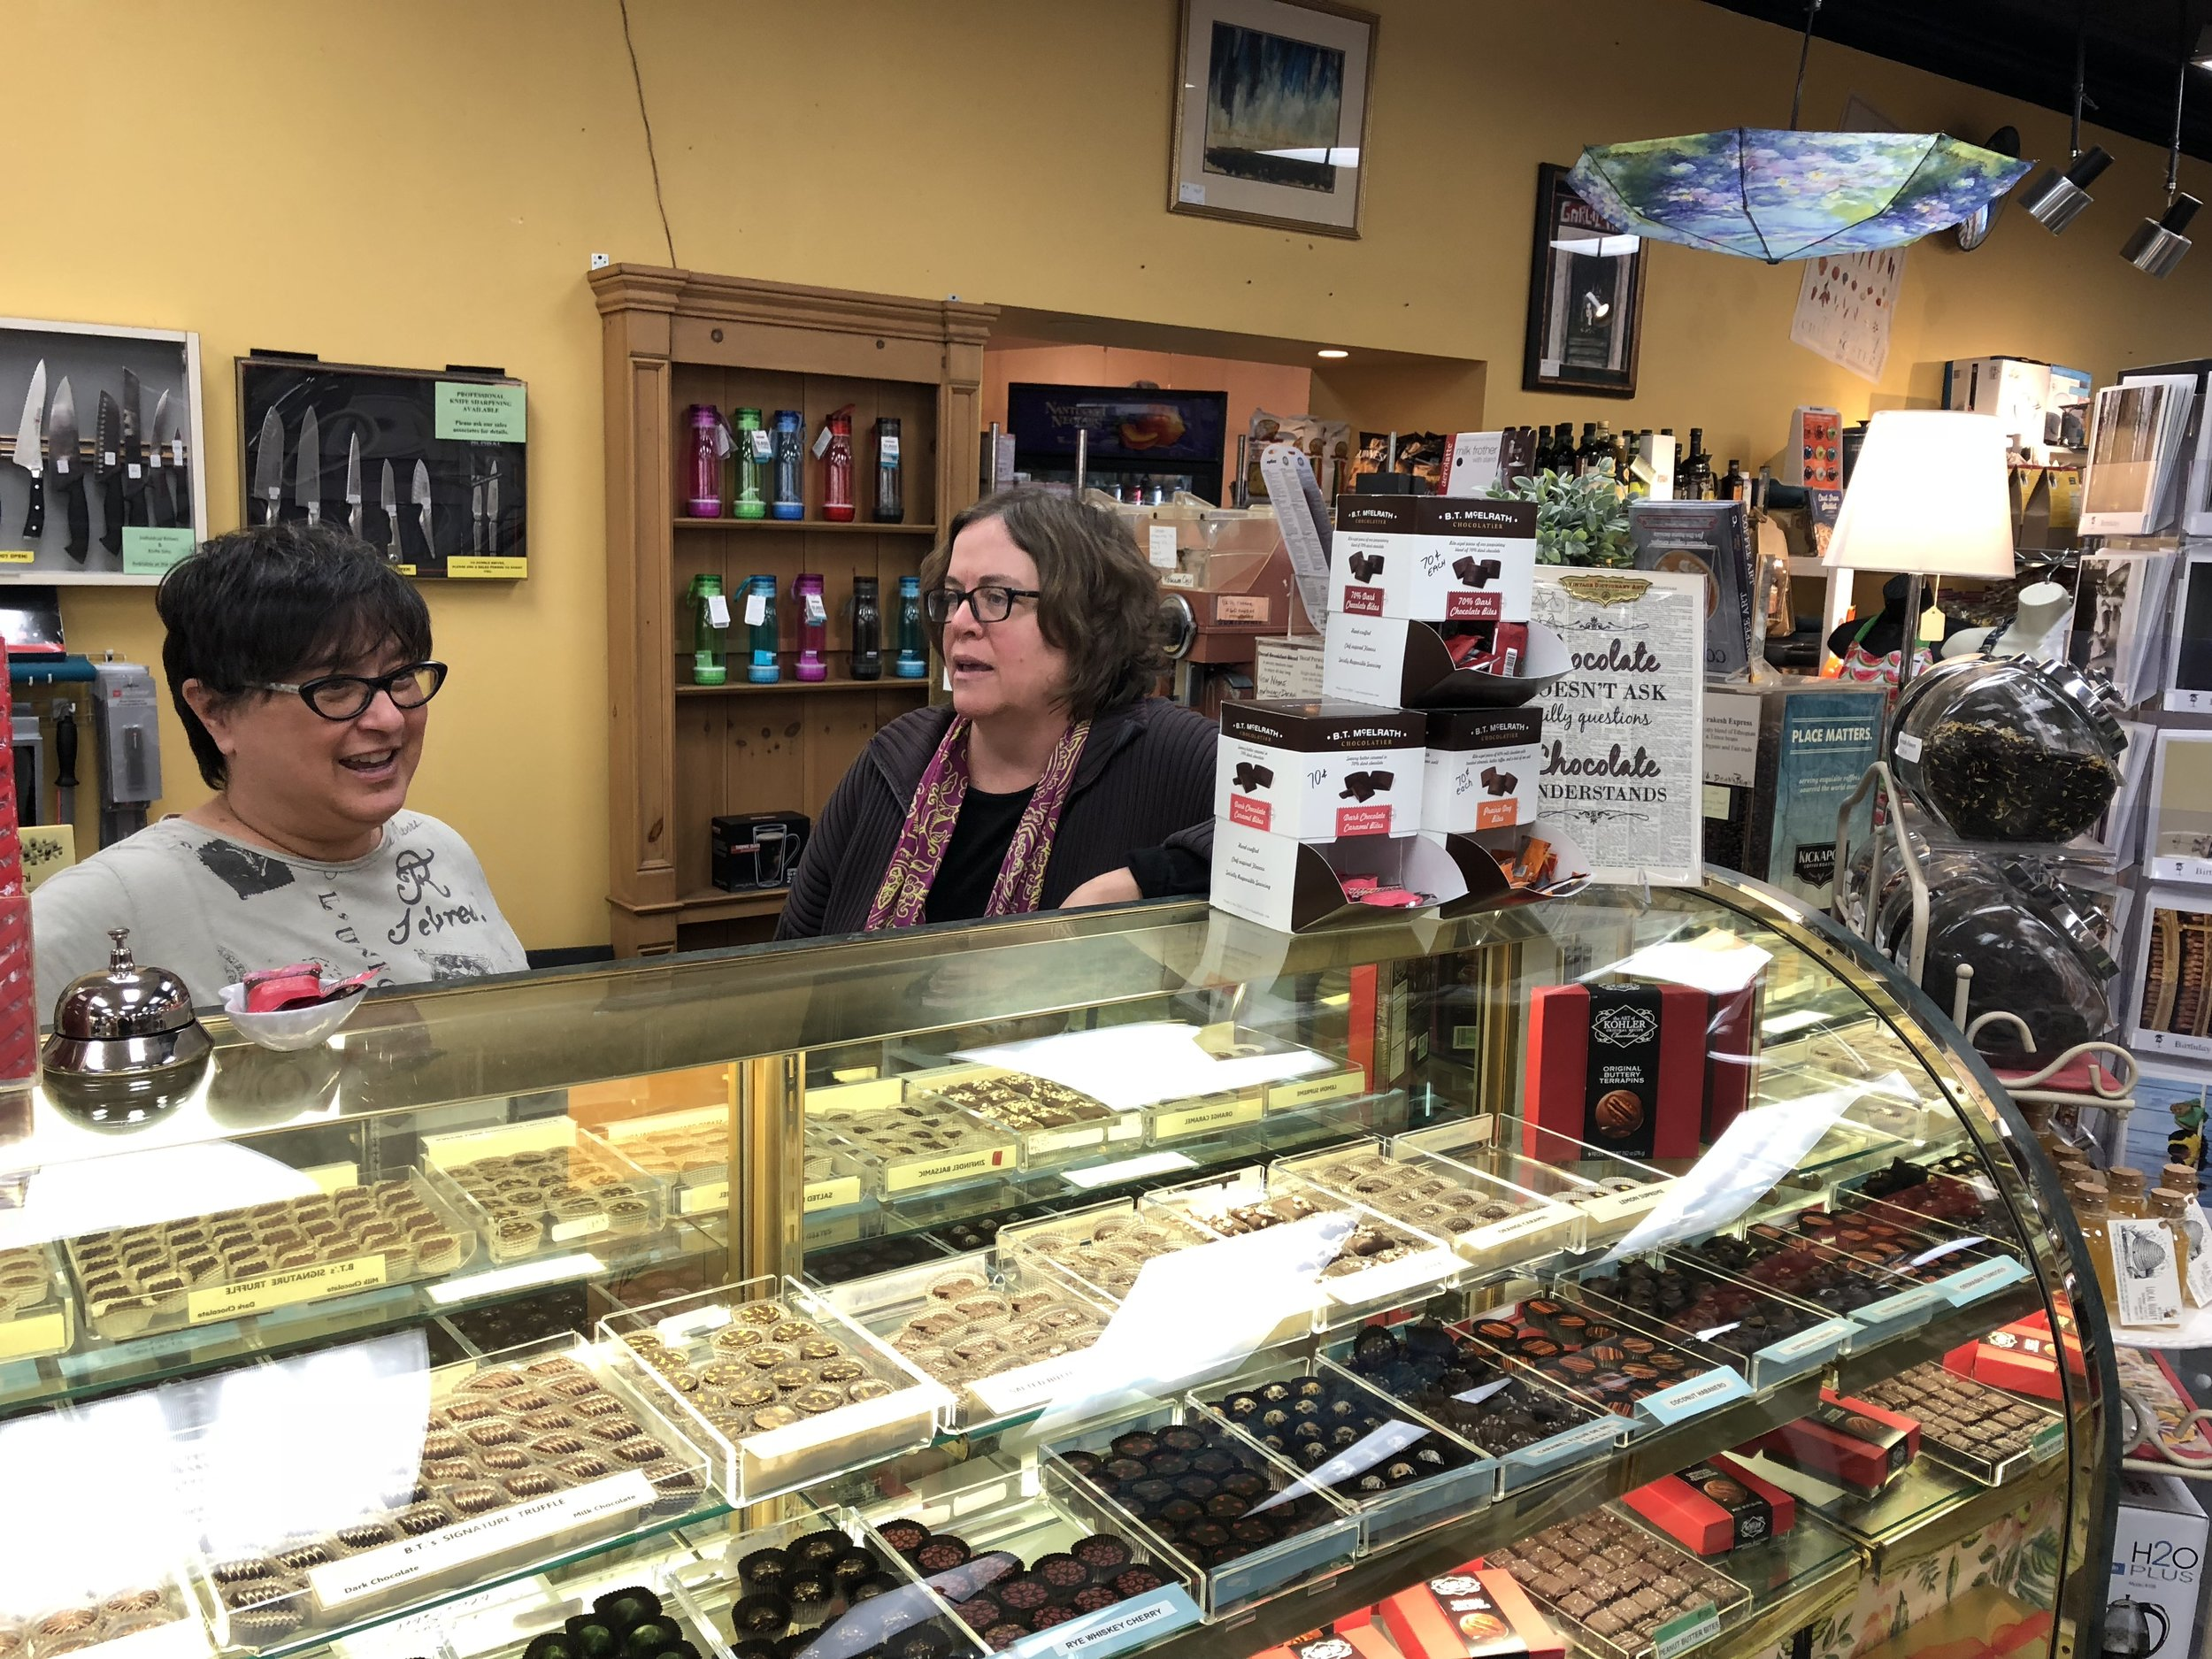 Pam Locsin (left) and Sarah Bushnell McManus (right) became business partners at The Garlic Press in 2000. They joined owner Dorothy Bushnell (not pictured) who has owned the business since 1976. (Image credit: Erik Prenzler)